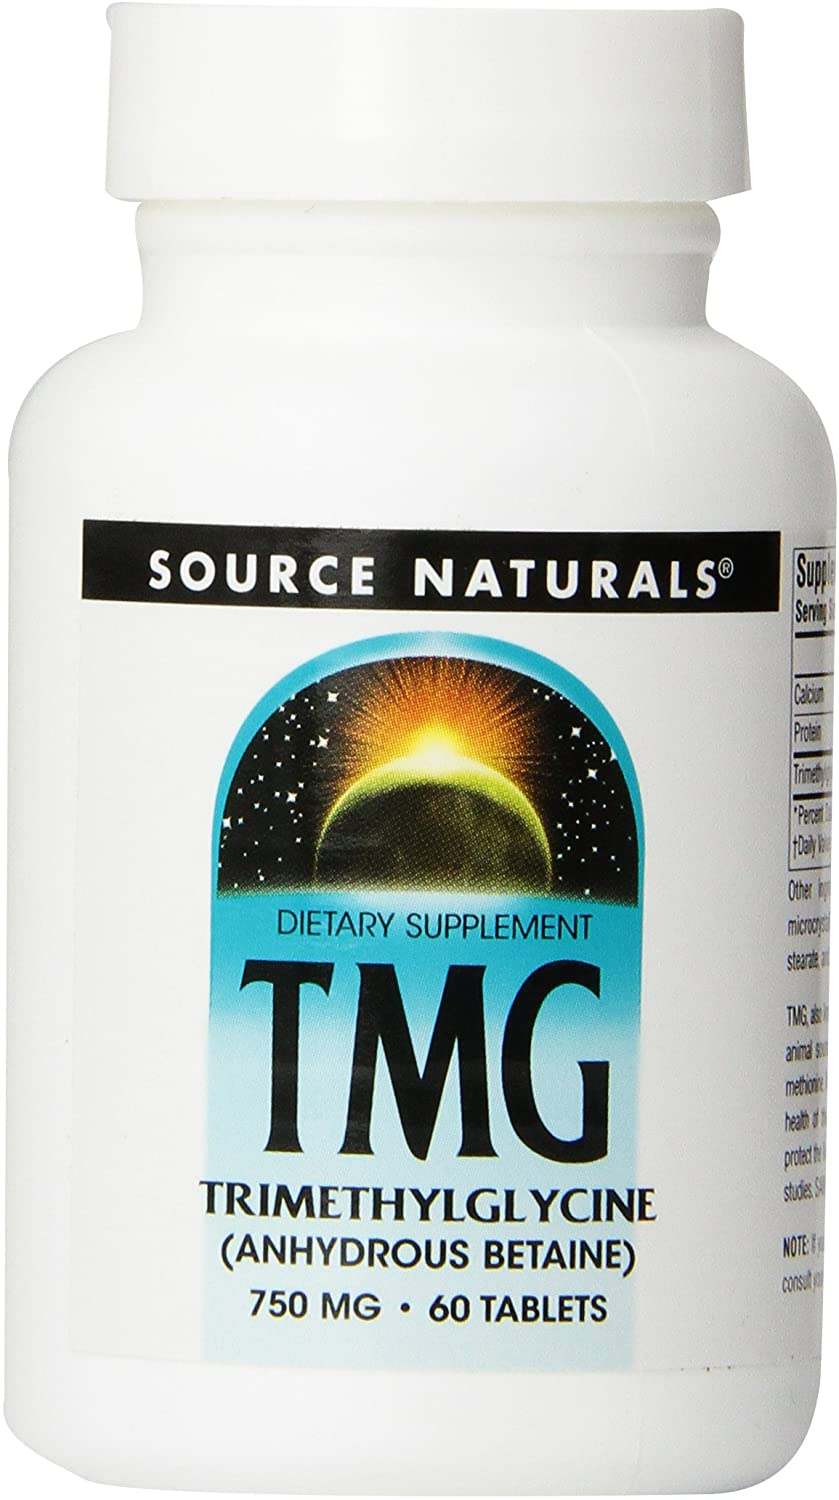 Source Naturals TMG 750mg Trimethylglycine (Anhydrous Betaine) - 60 Tablets